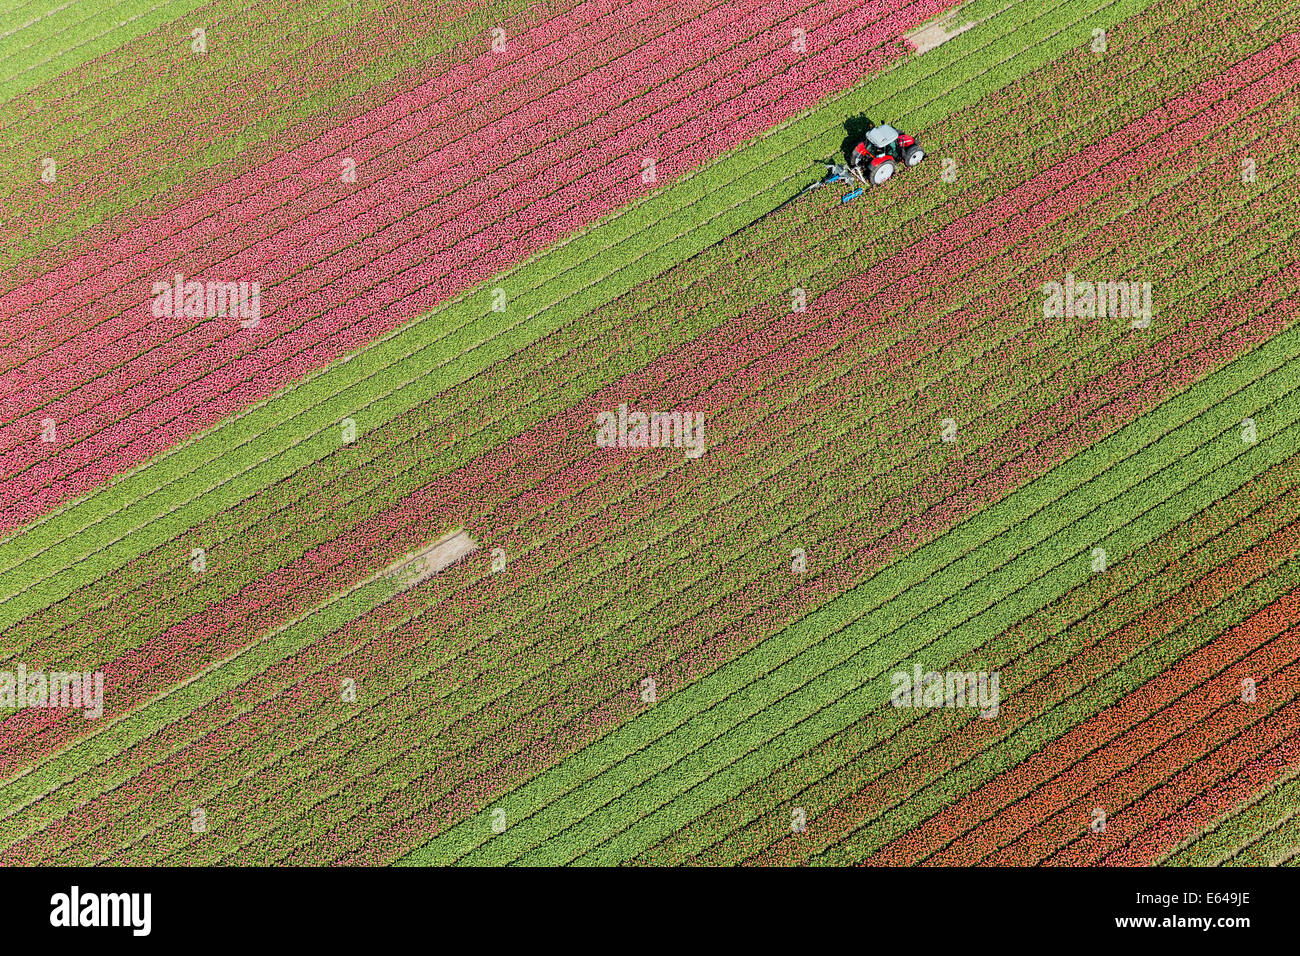 Tractor in tulip fields, North Holland, Netherlands Stock Photo